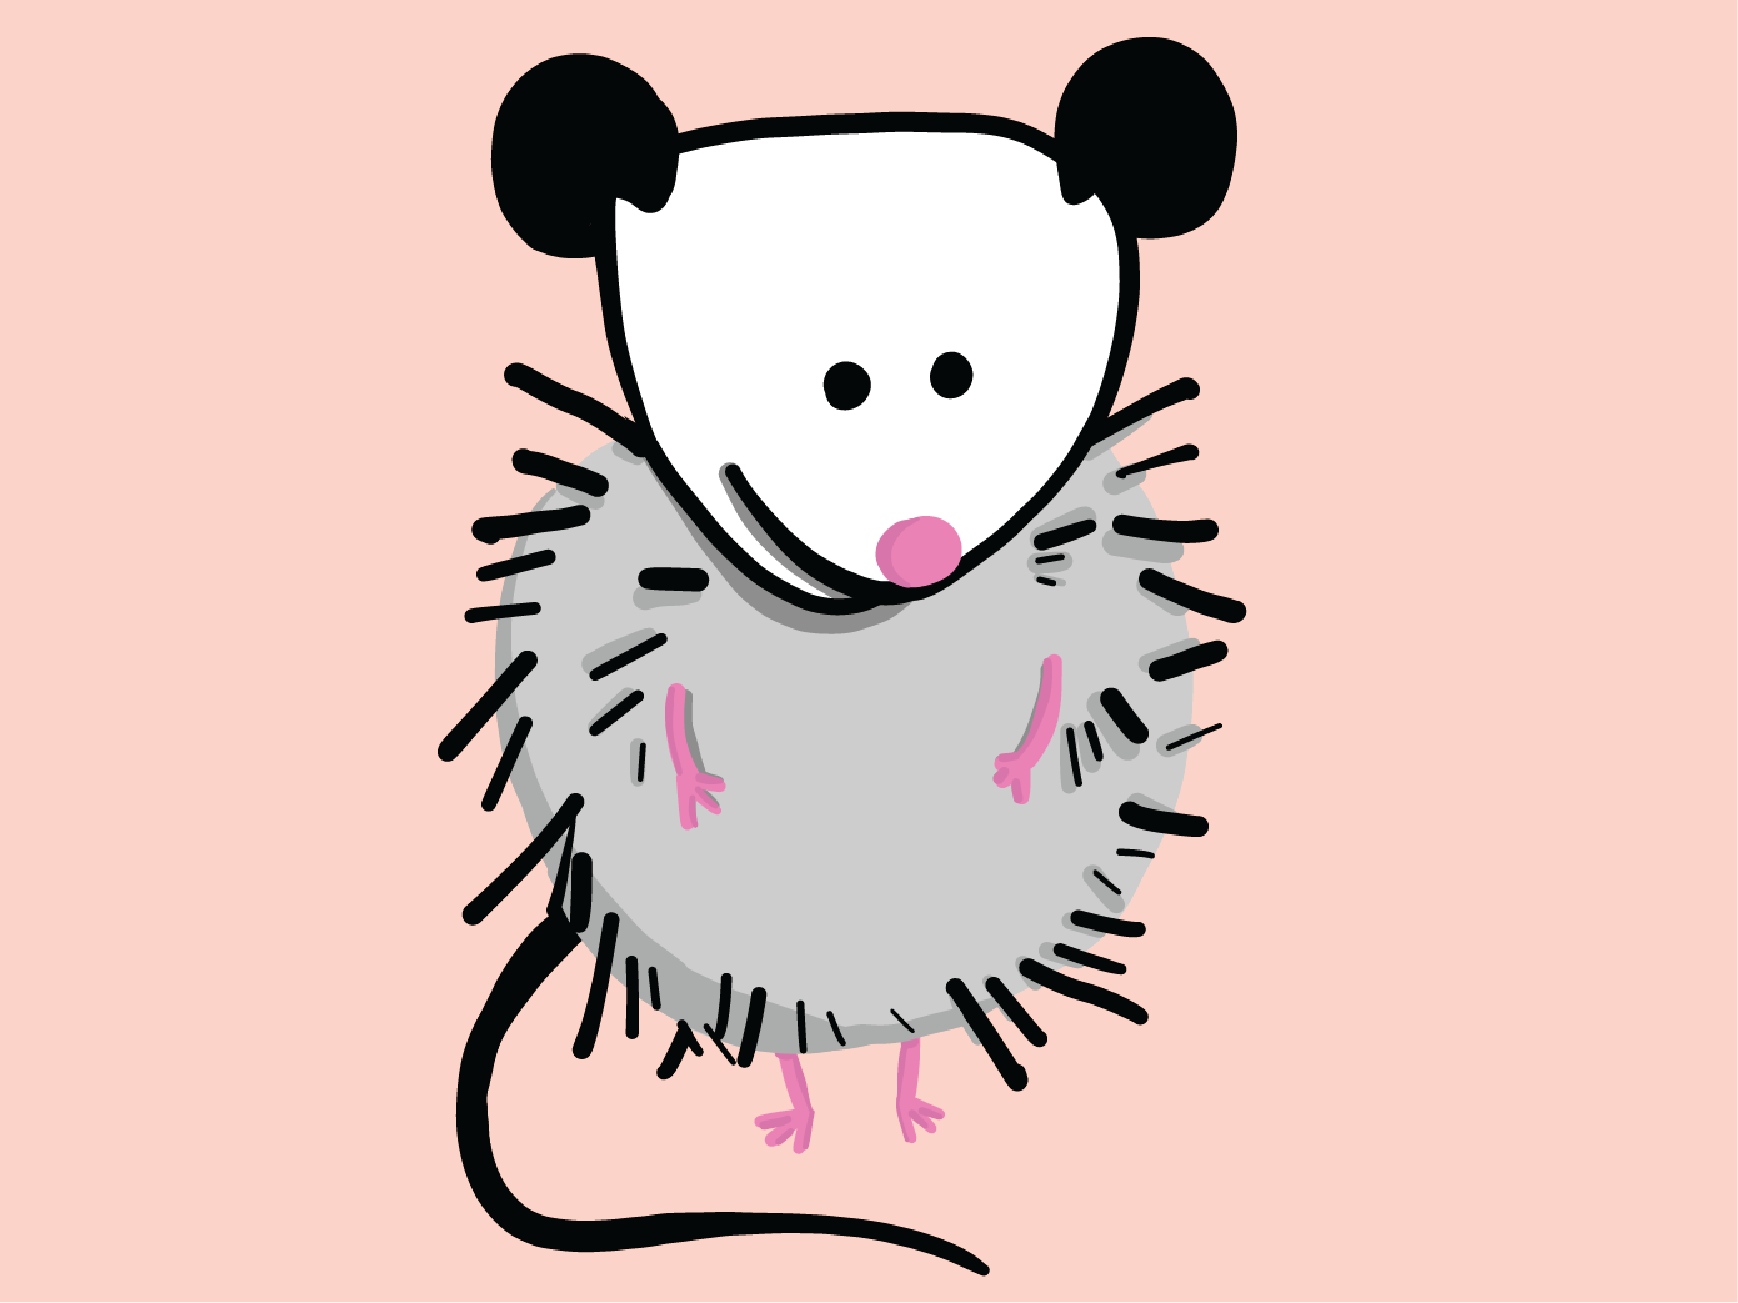 Illustration of a cute possum